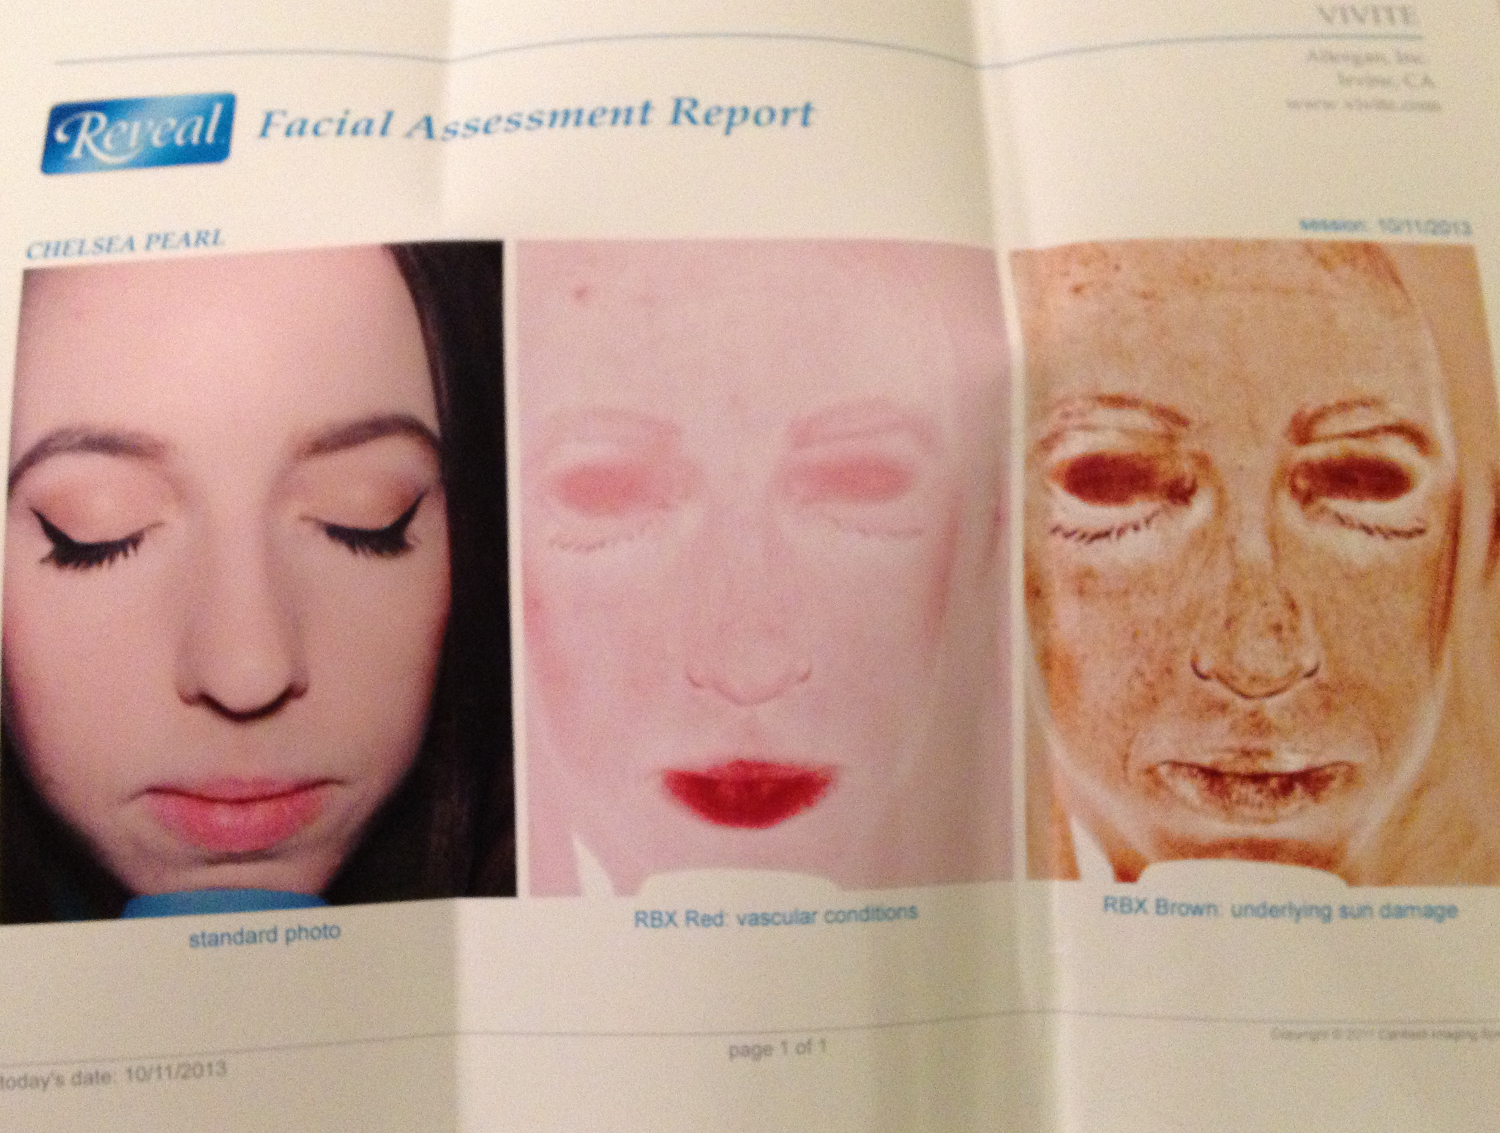 SkinSpirit Reveal Facial Assessment Report